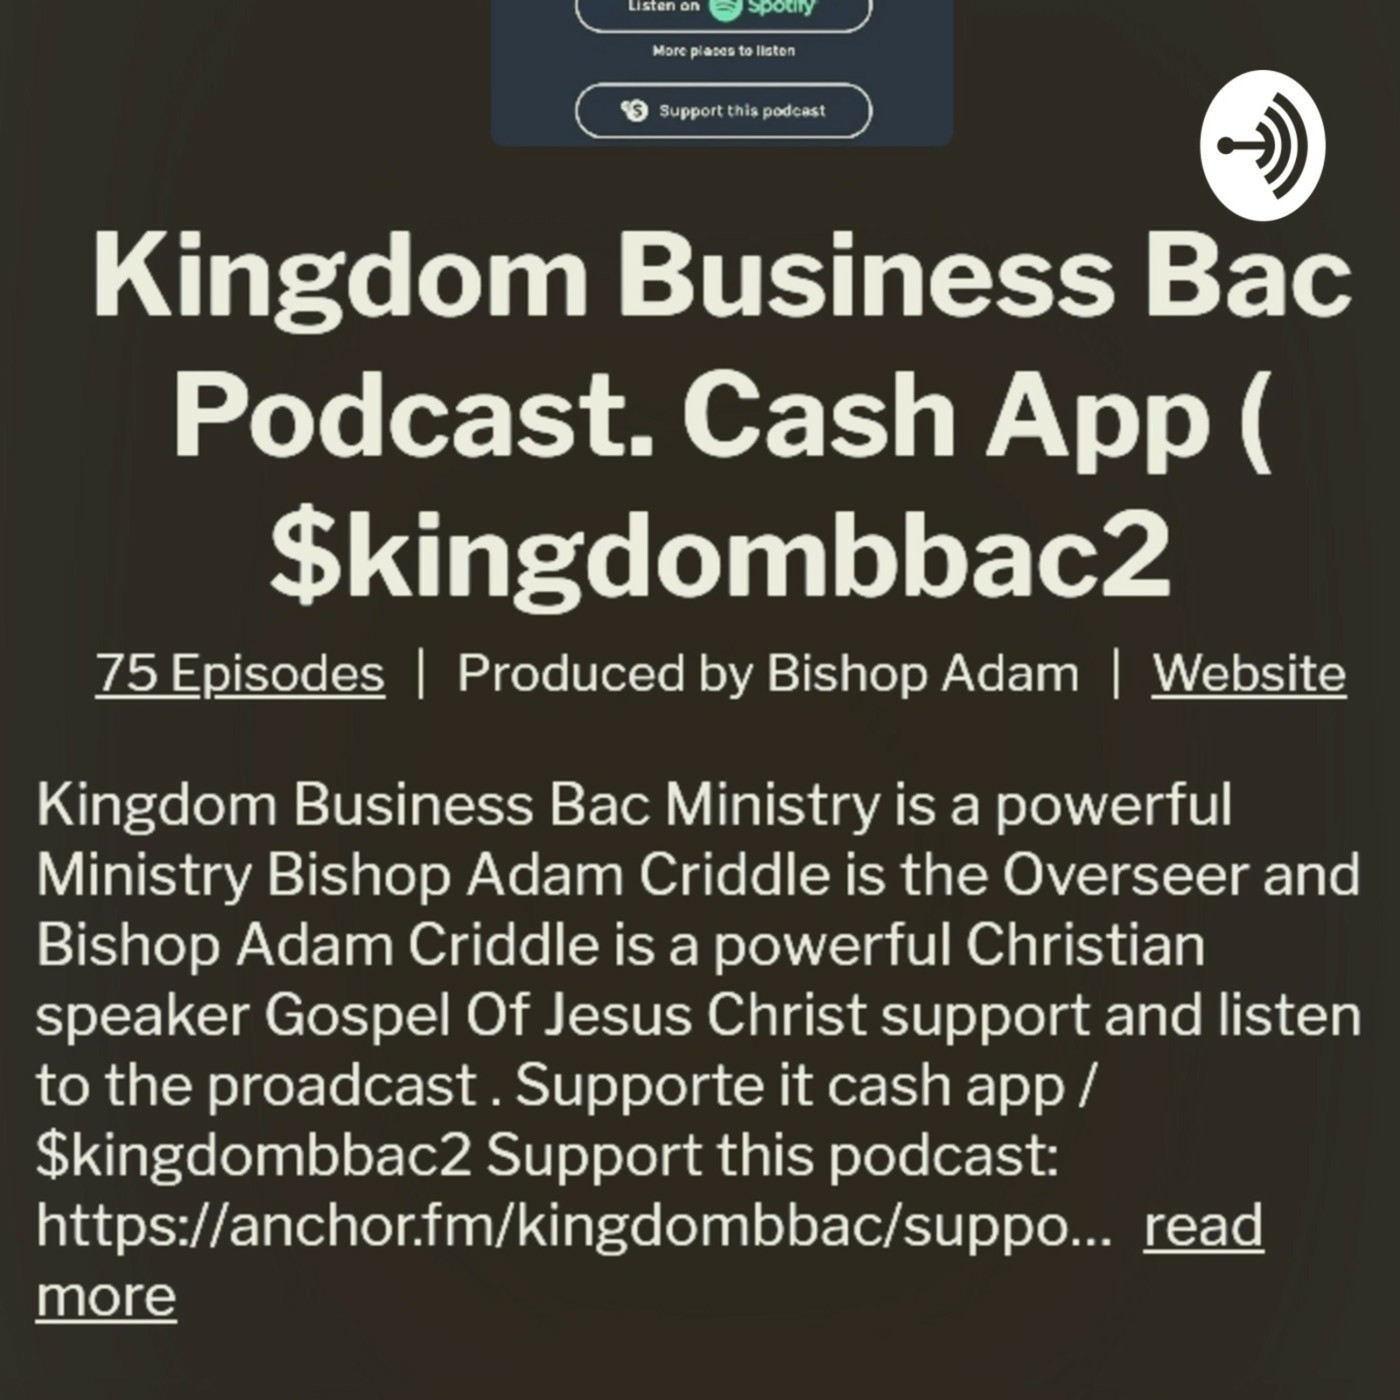 Kingdom Business Bac podcast with Bishop Adam c visit today and keep back.